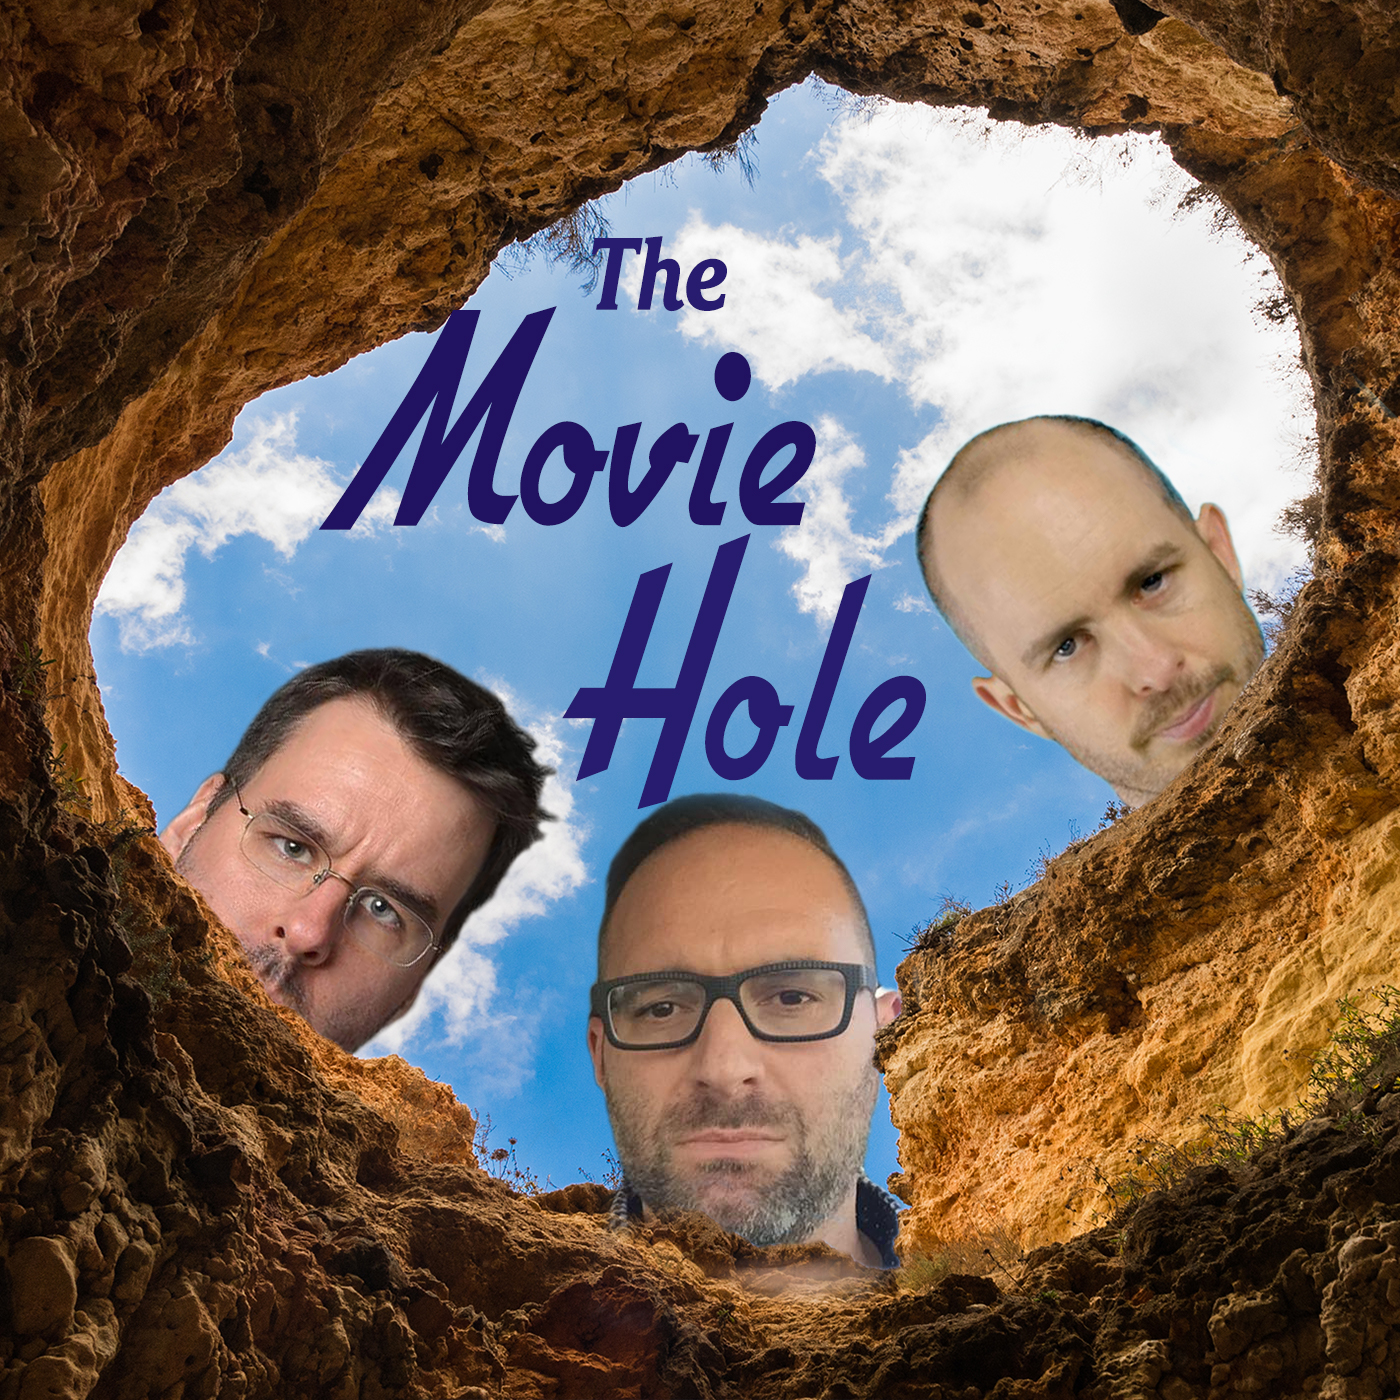 Movie Hole logo 1400